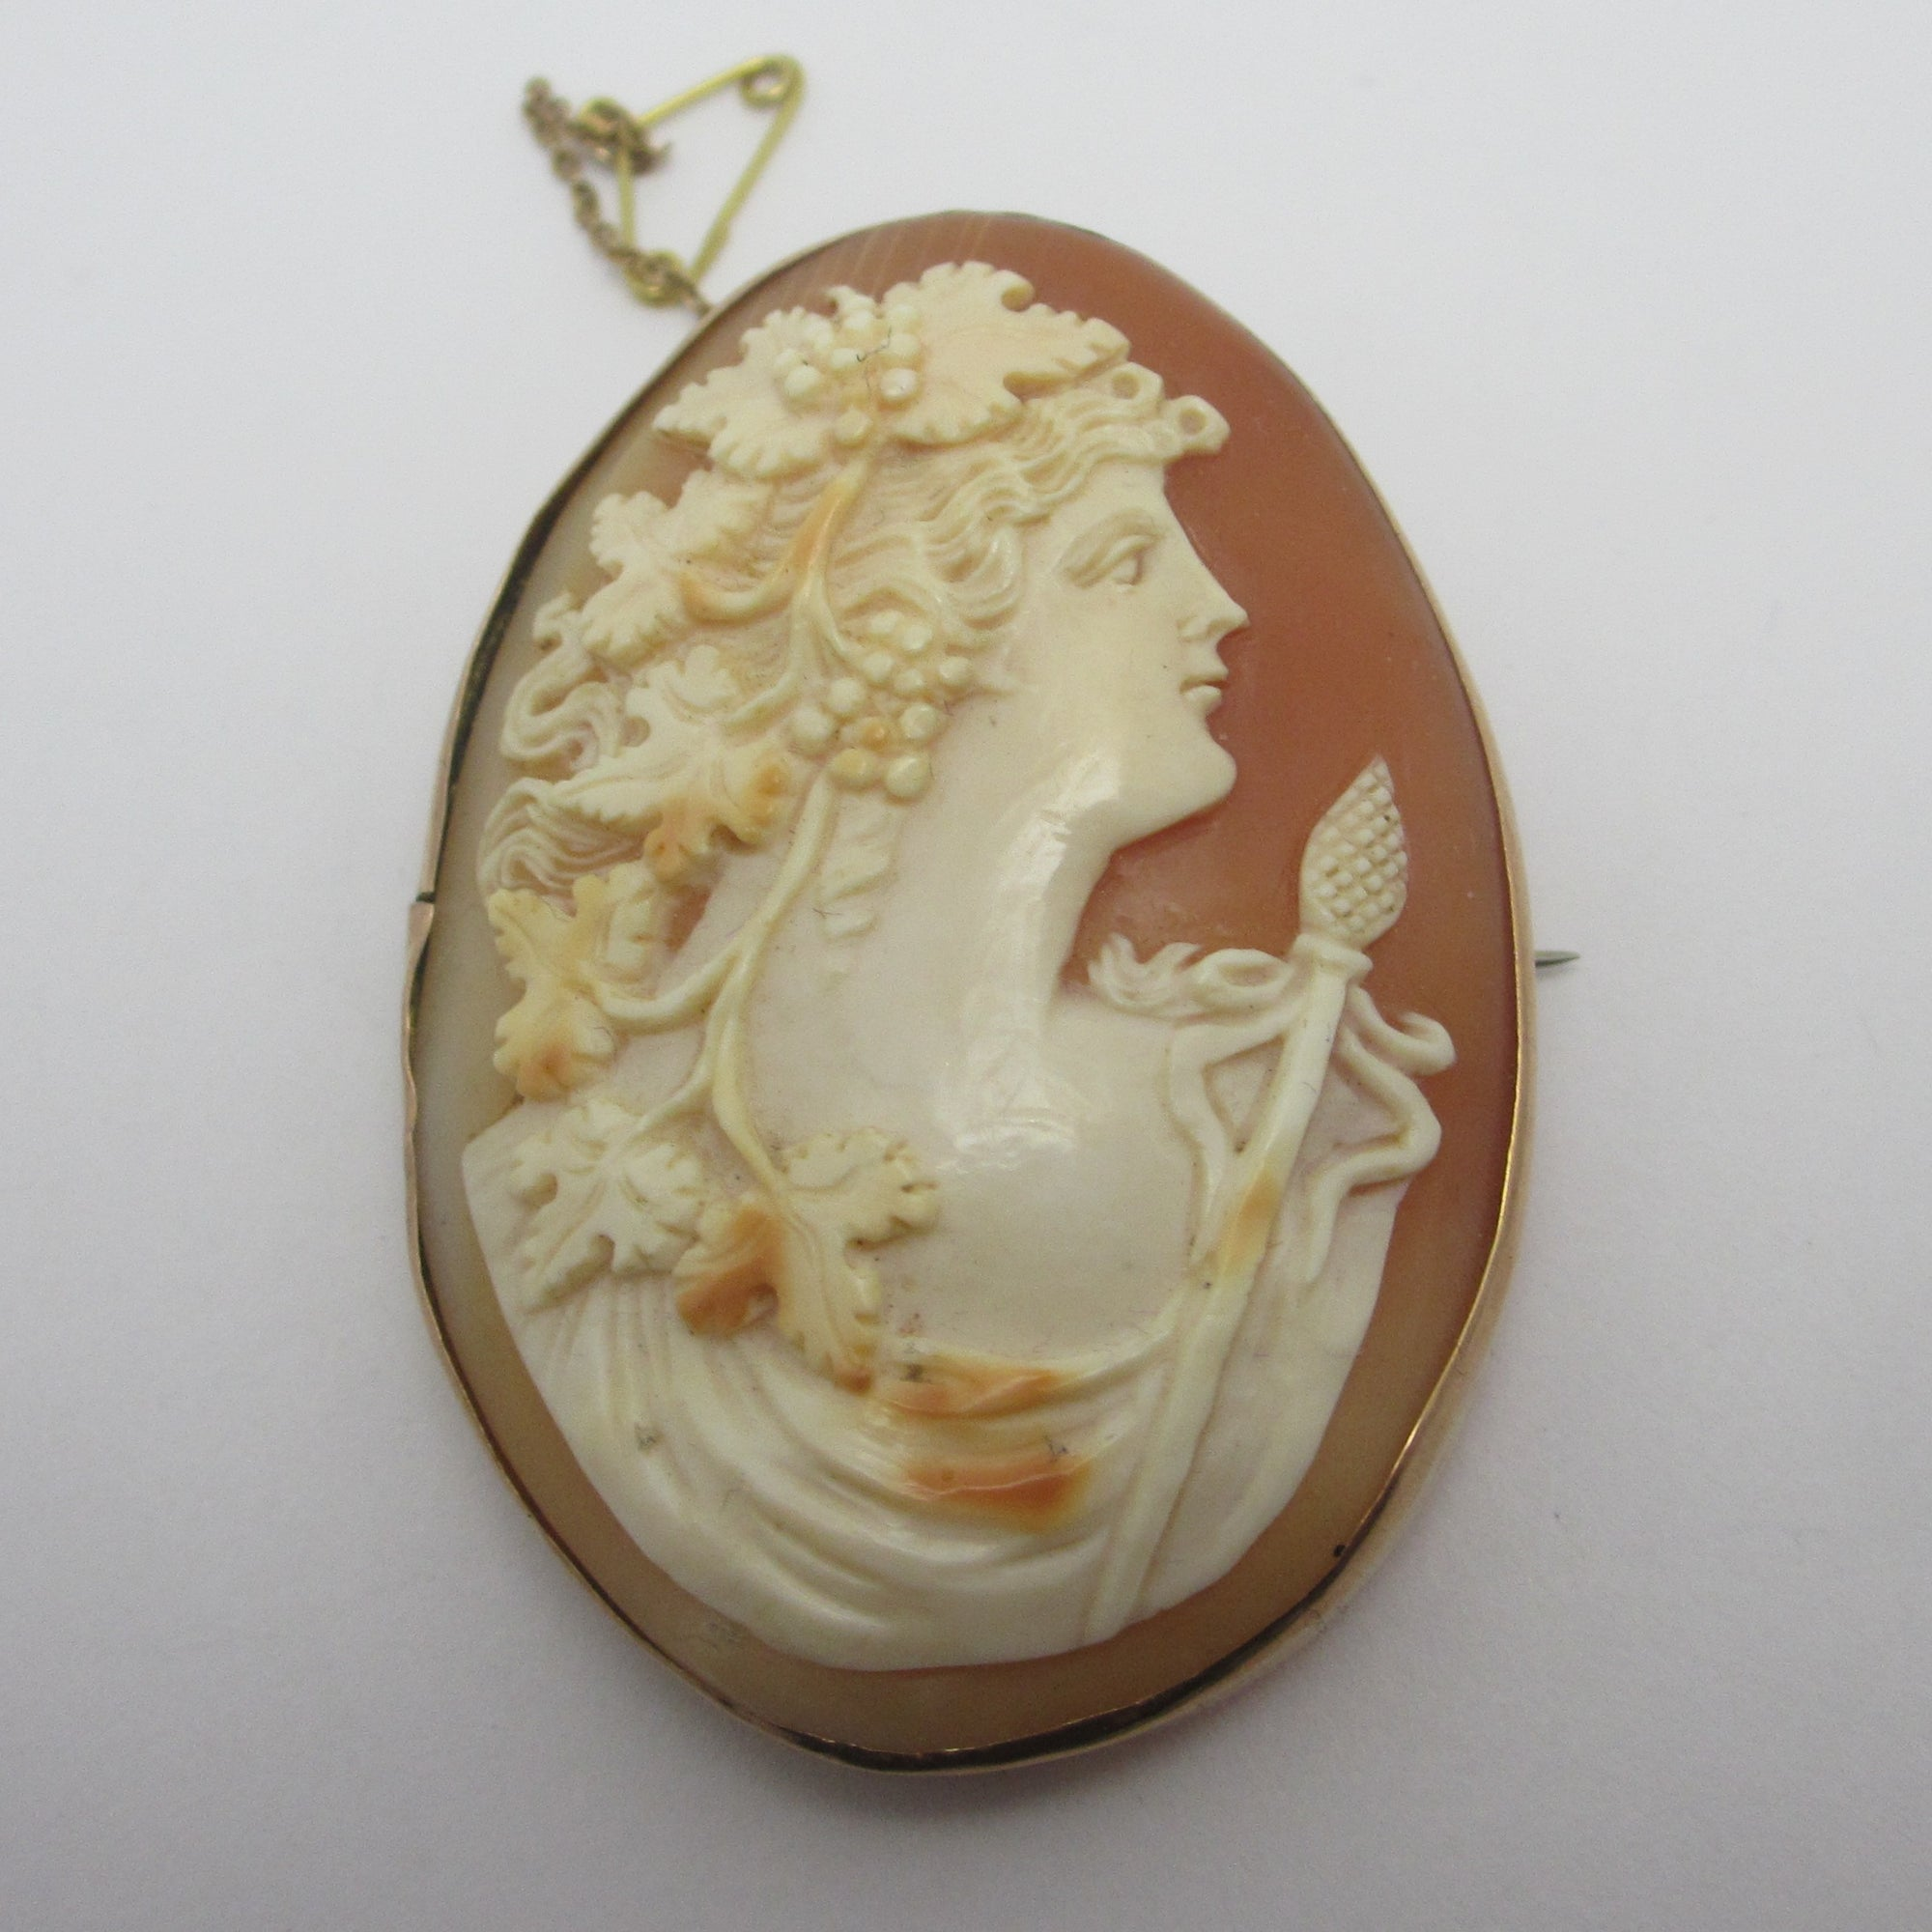 Real Shell Cameo 9k Gold Brooch Pin Antique Victorian c1860